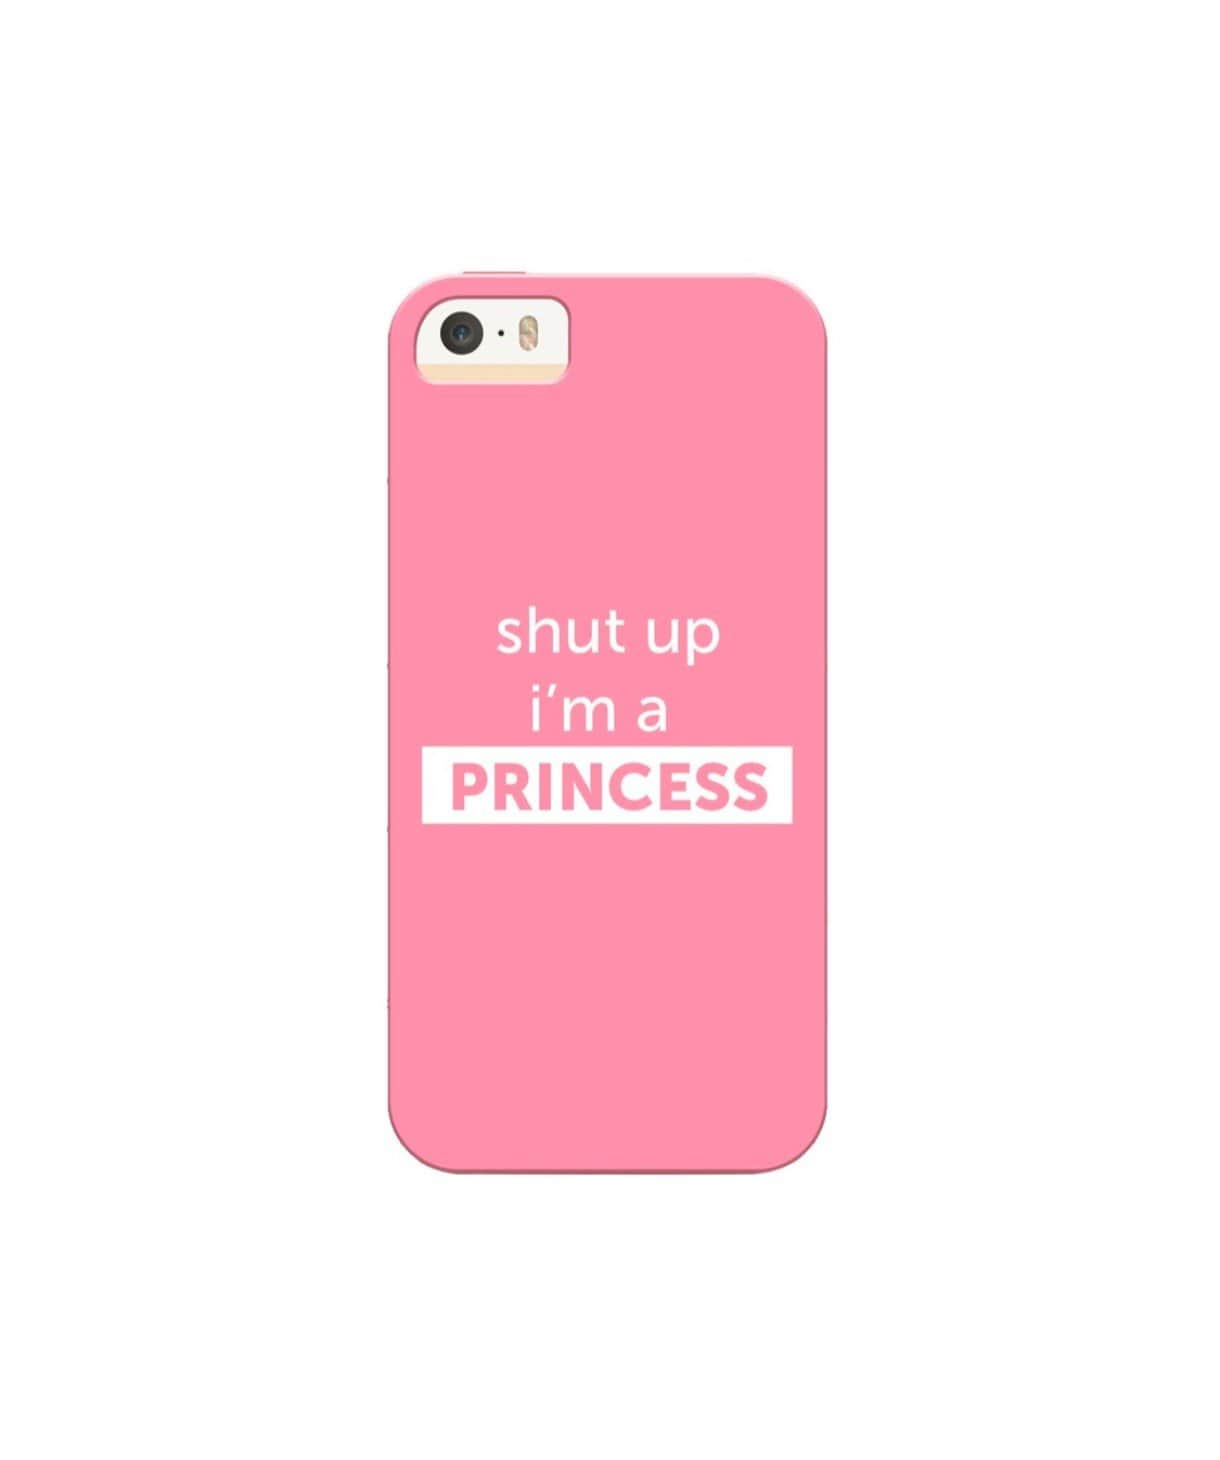 I'm A Princess IPhone Cover (Personalisation Available) - Uptownie